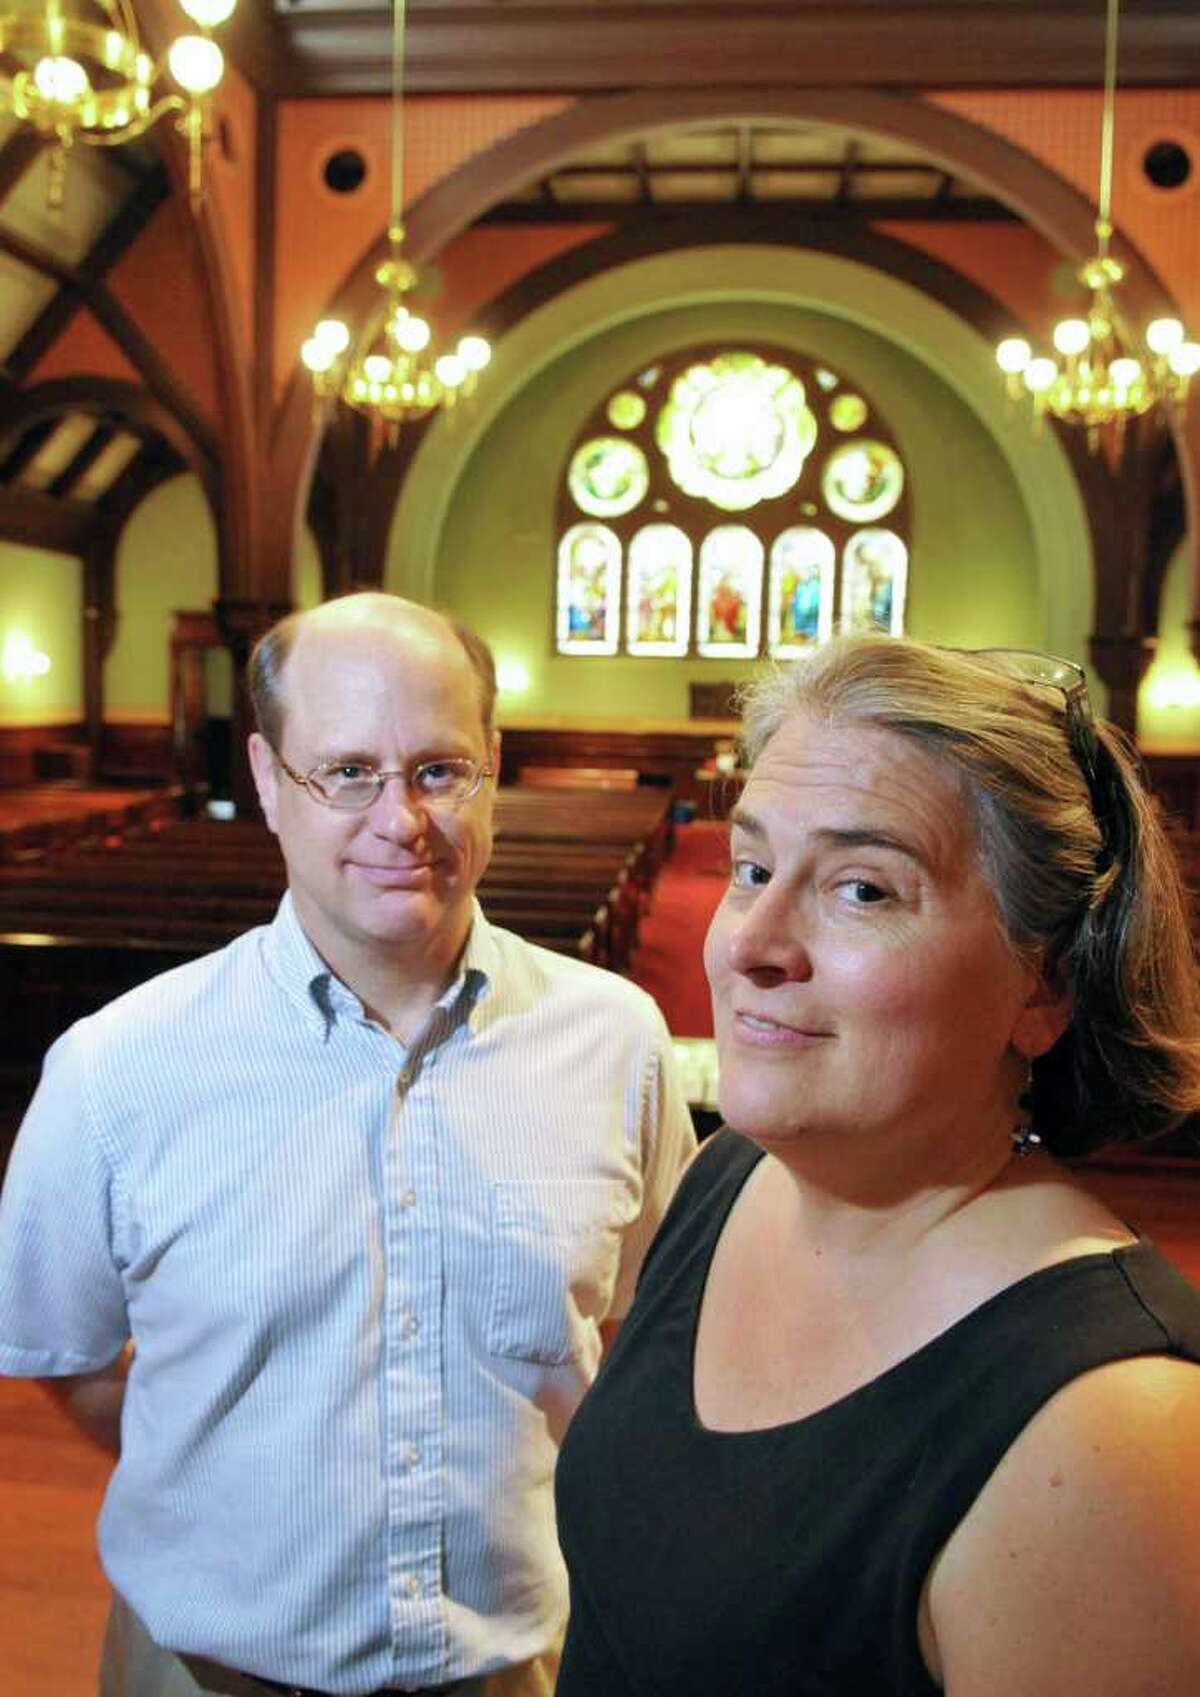 Reverands Glenn, left, and Miriam Leupold inside First Presbyterian Church in Albany Wednesday July 20, 2011. (John Carl D'Annibale / Times Union)